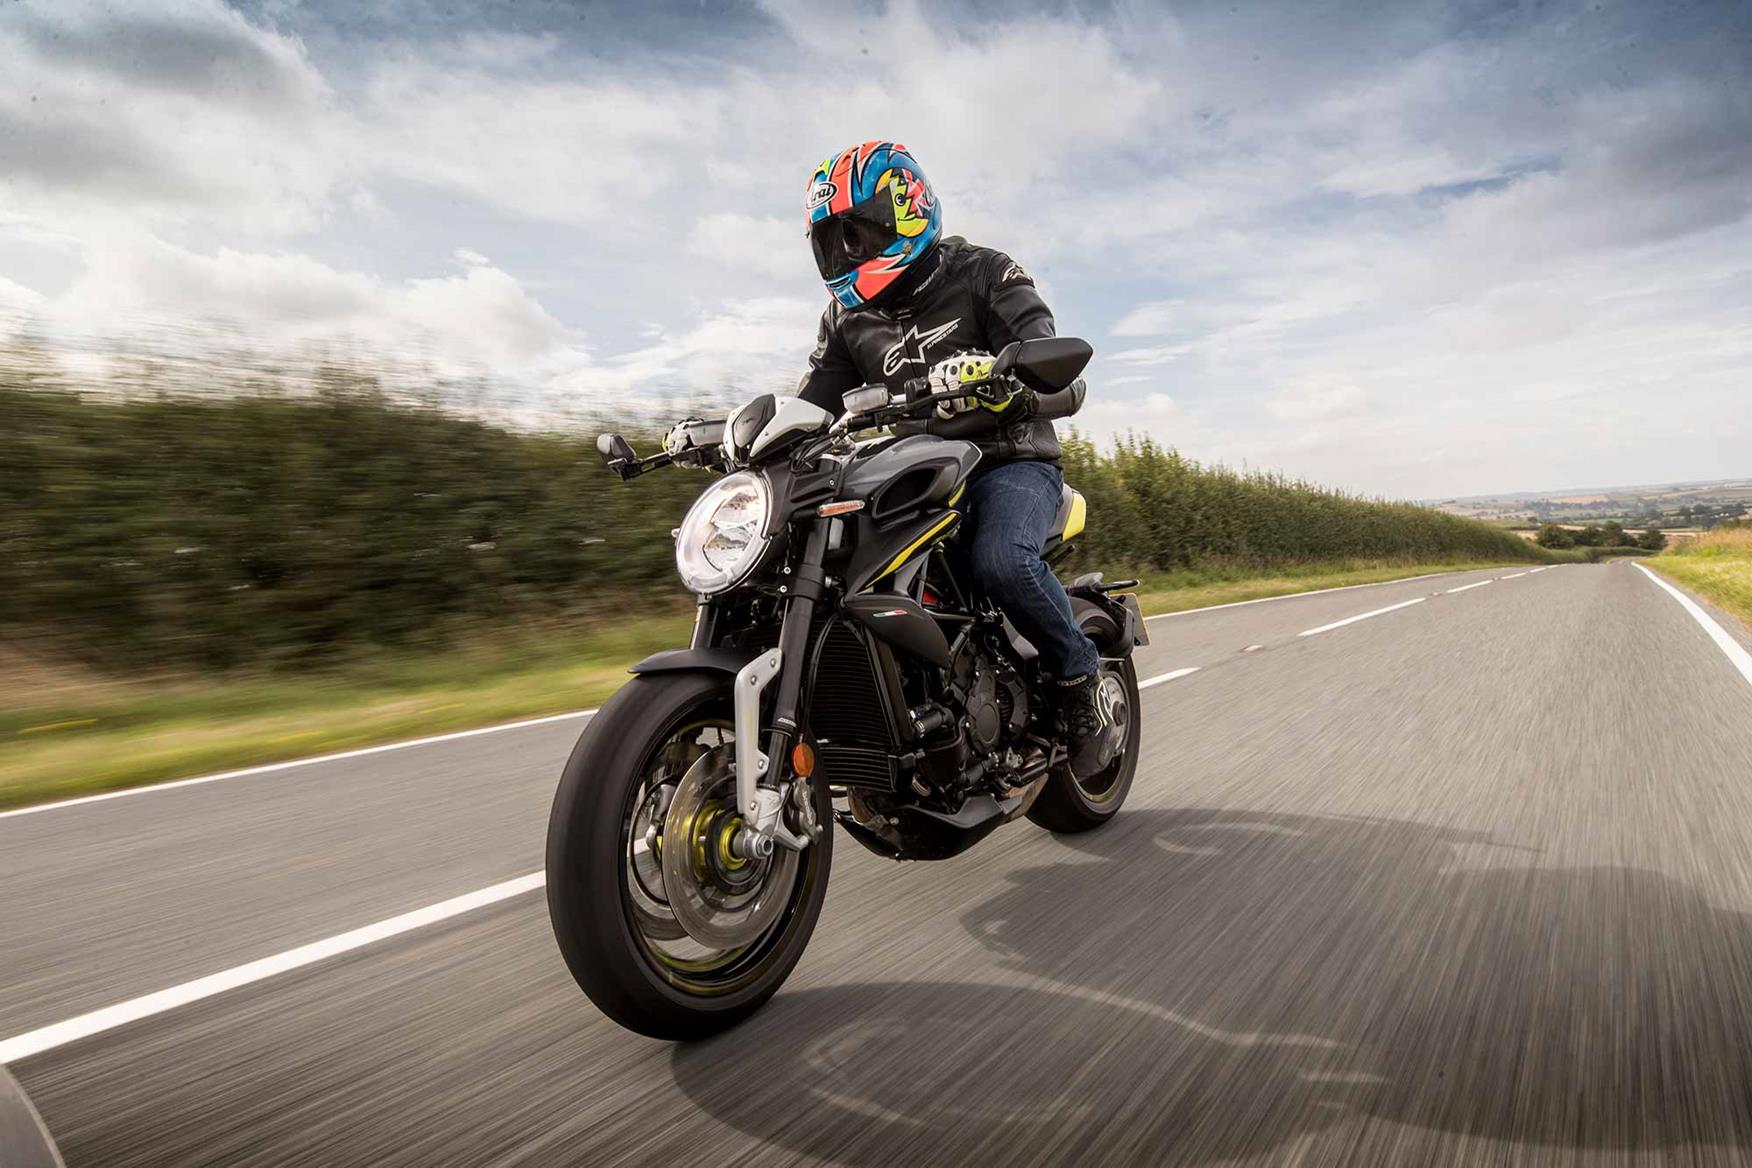 Riding the MV Agusta Dragster 800 RR